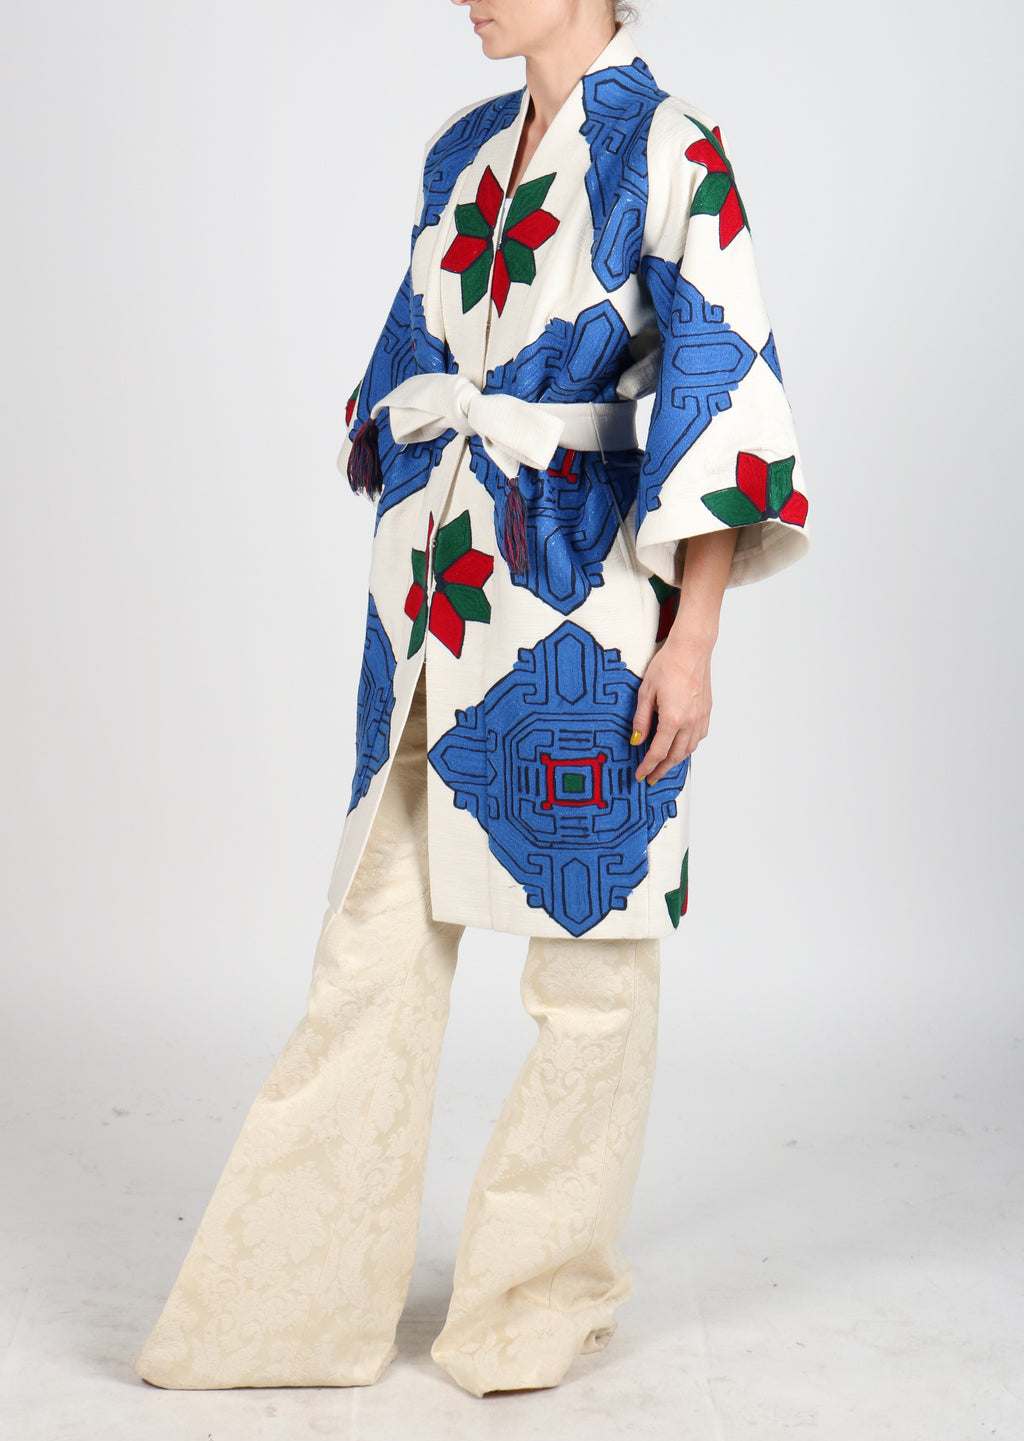 Fanm Mon Vyshyvanka Cream Cotton Jacket ARI Embroidered MULTI COLOR Geometric Jacket